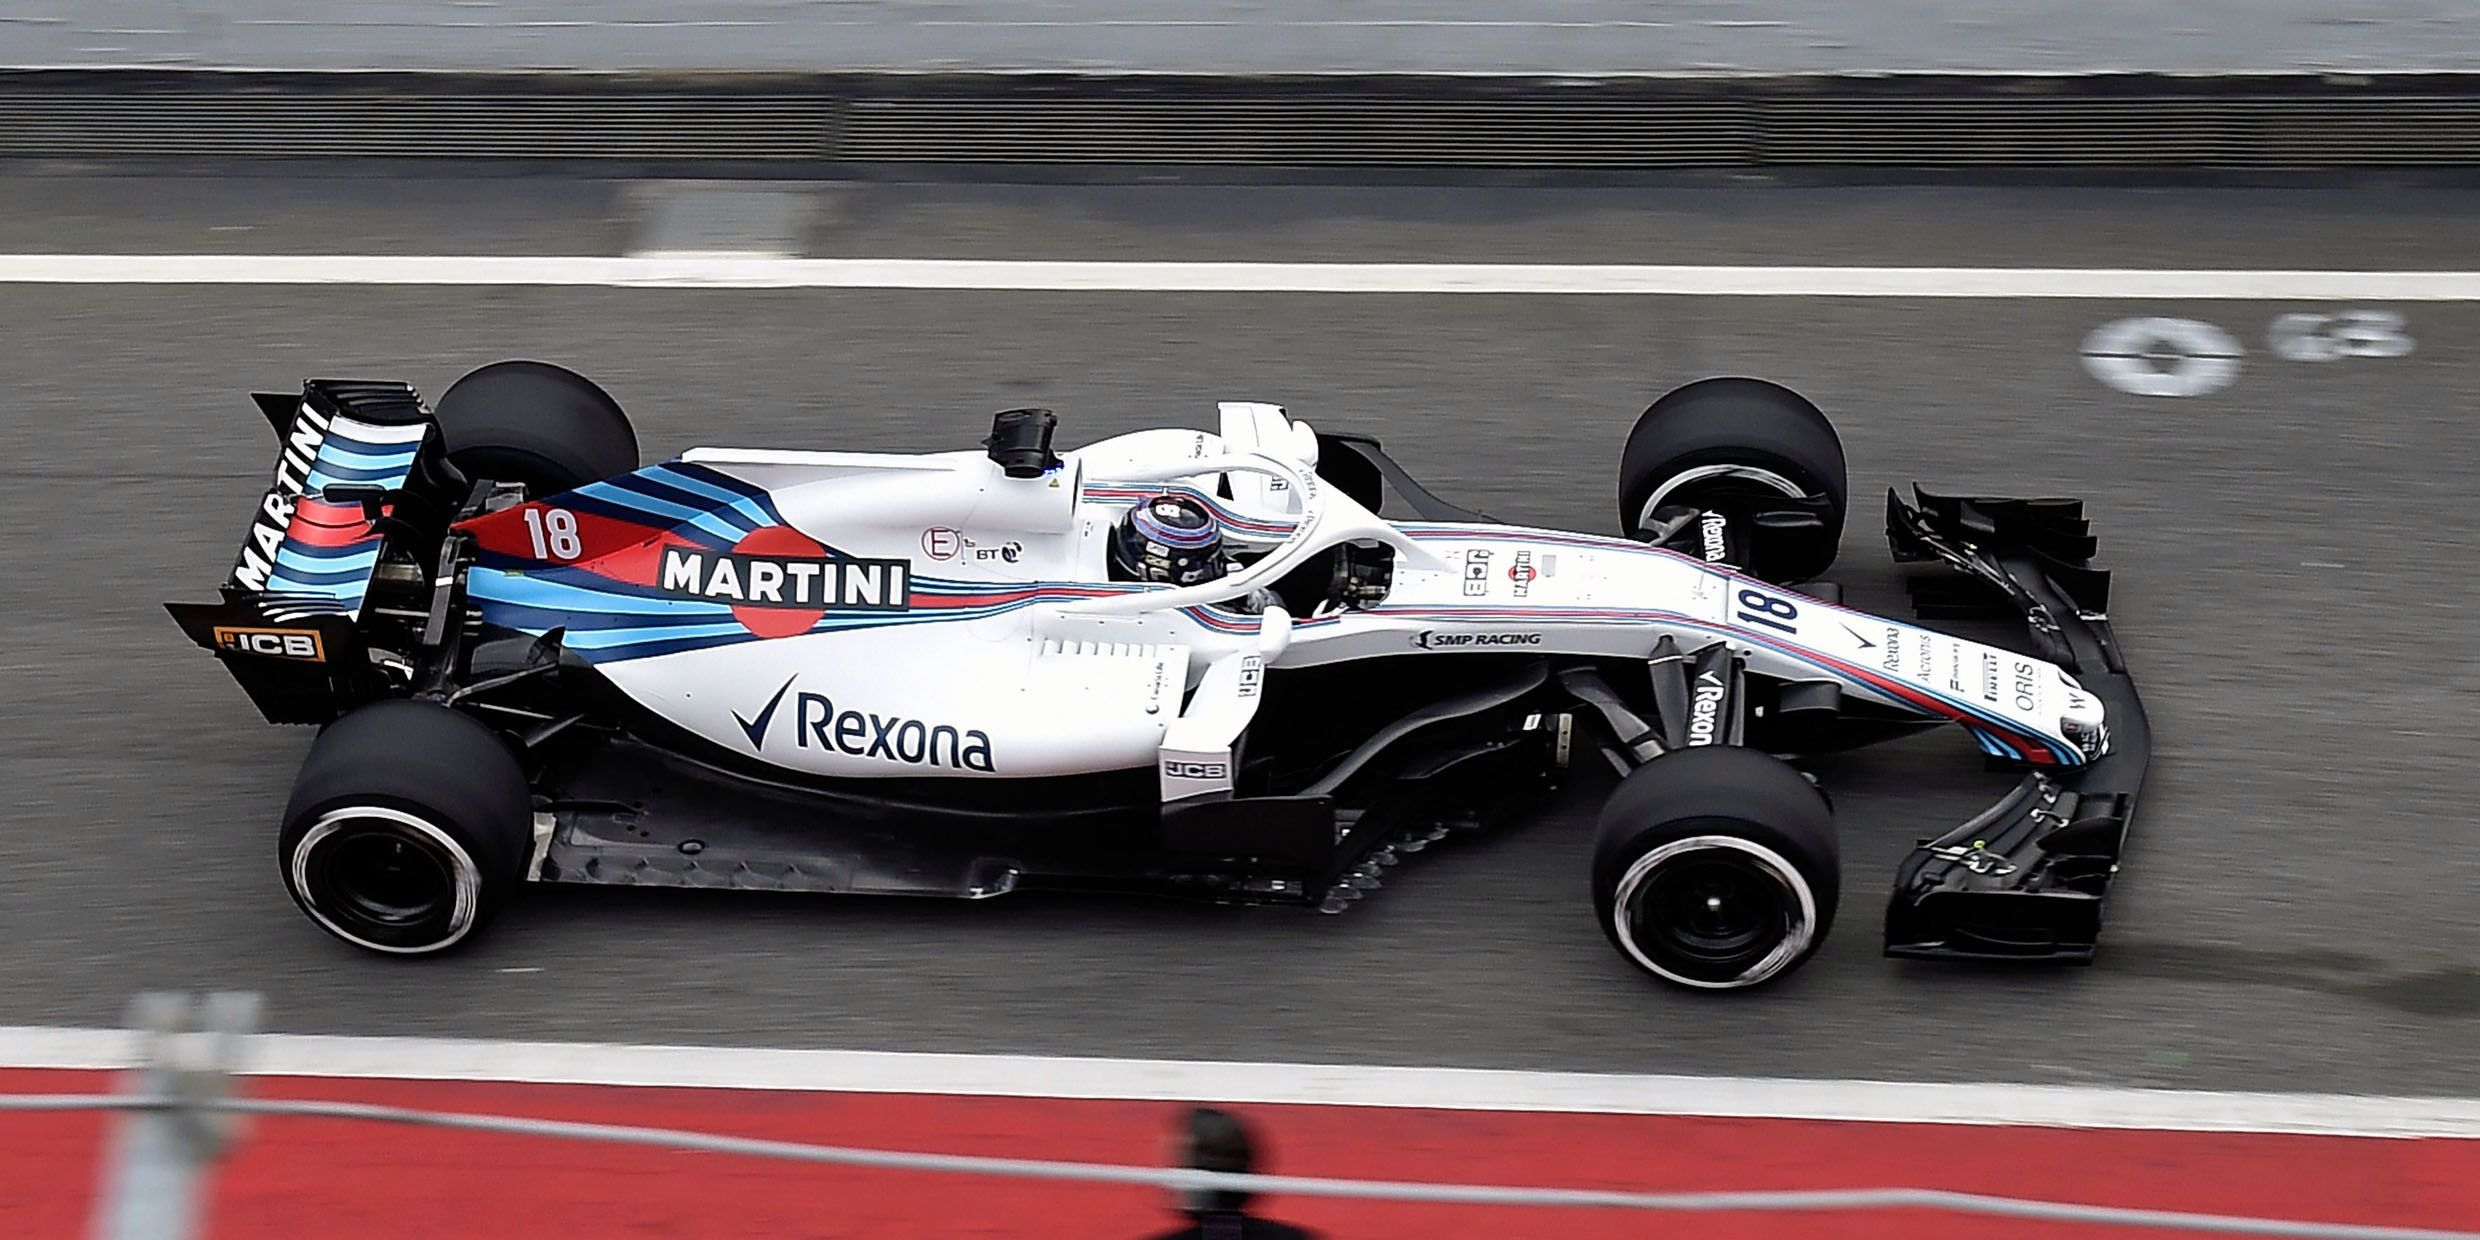 Canada S Lance Stroll Eyes Improvement For Both Himself And F1 Auto News F1 Racing Racing